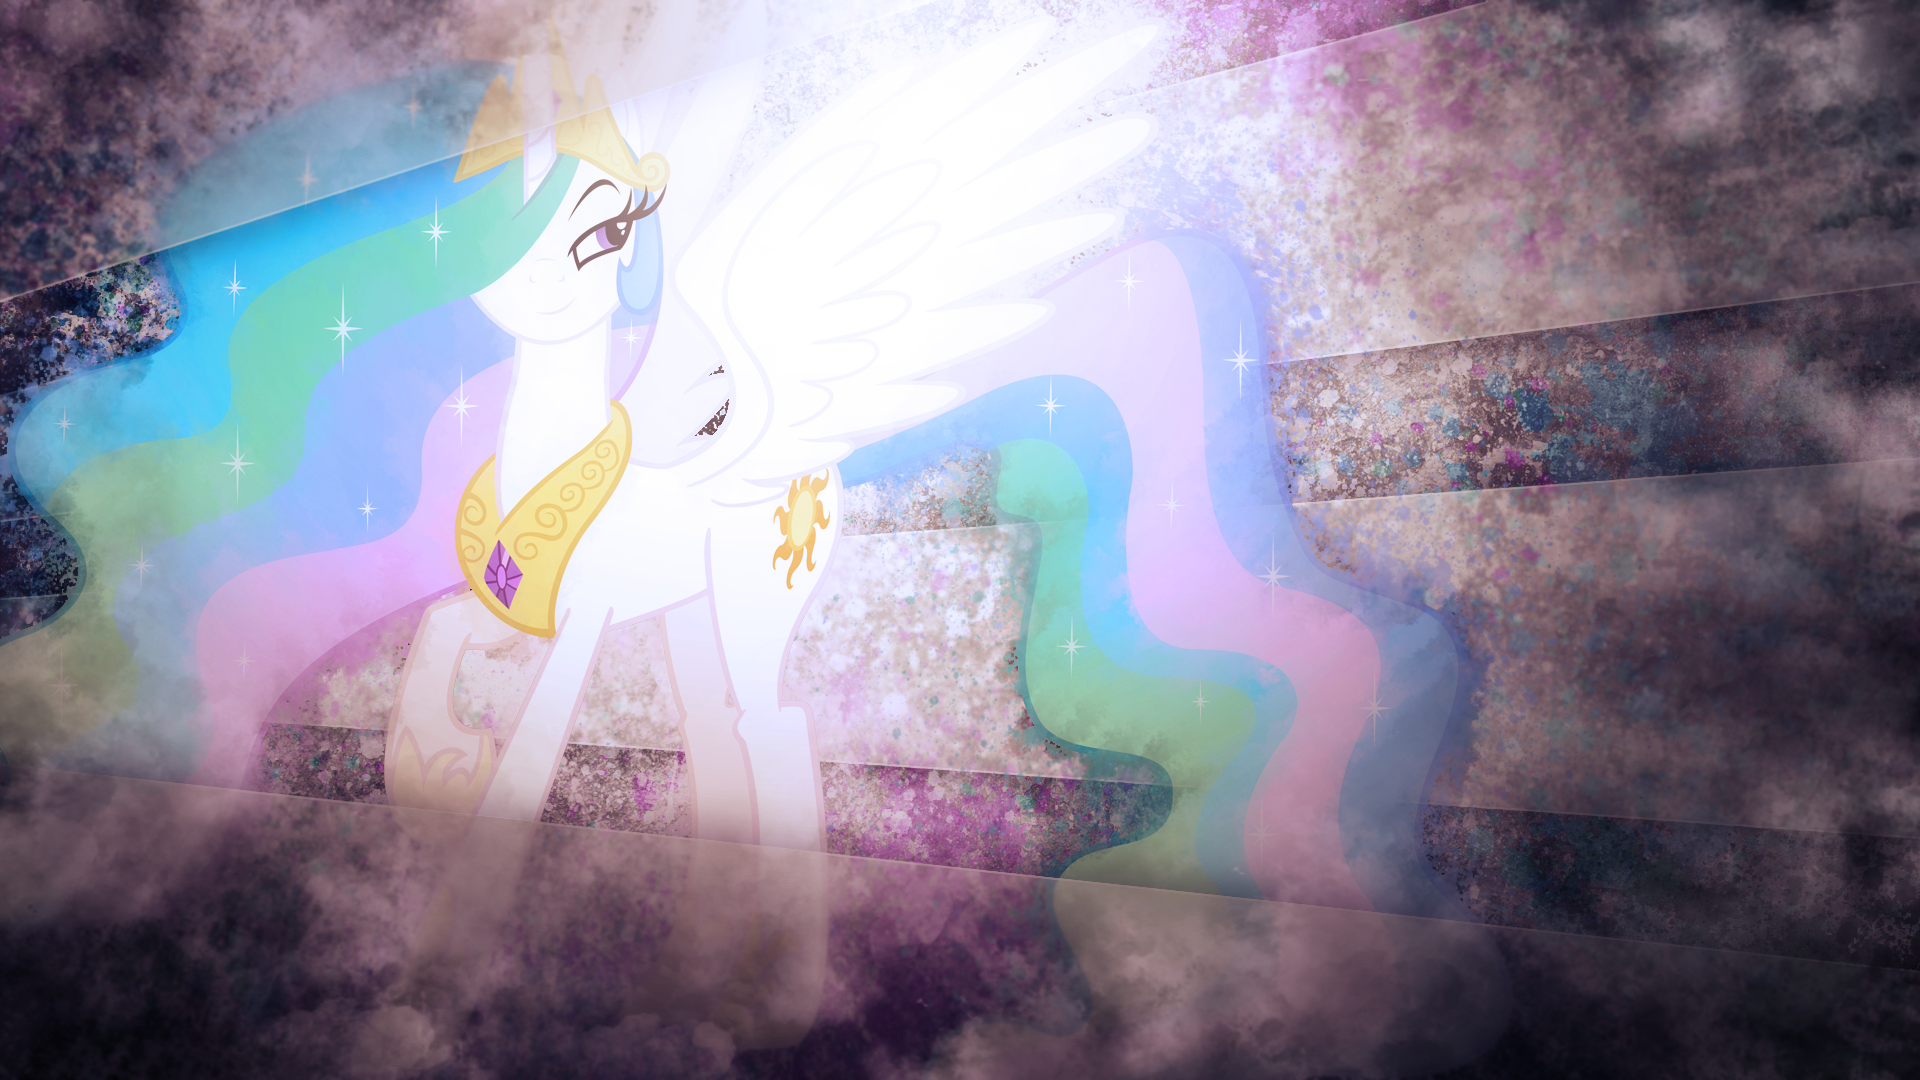 Princess of the Sun by SandwichDelta and Santafer